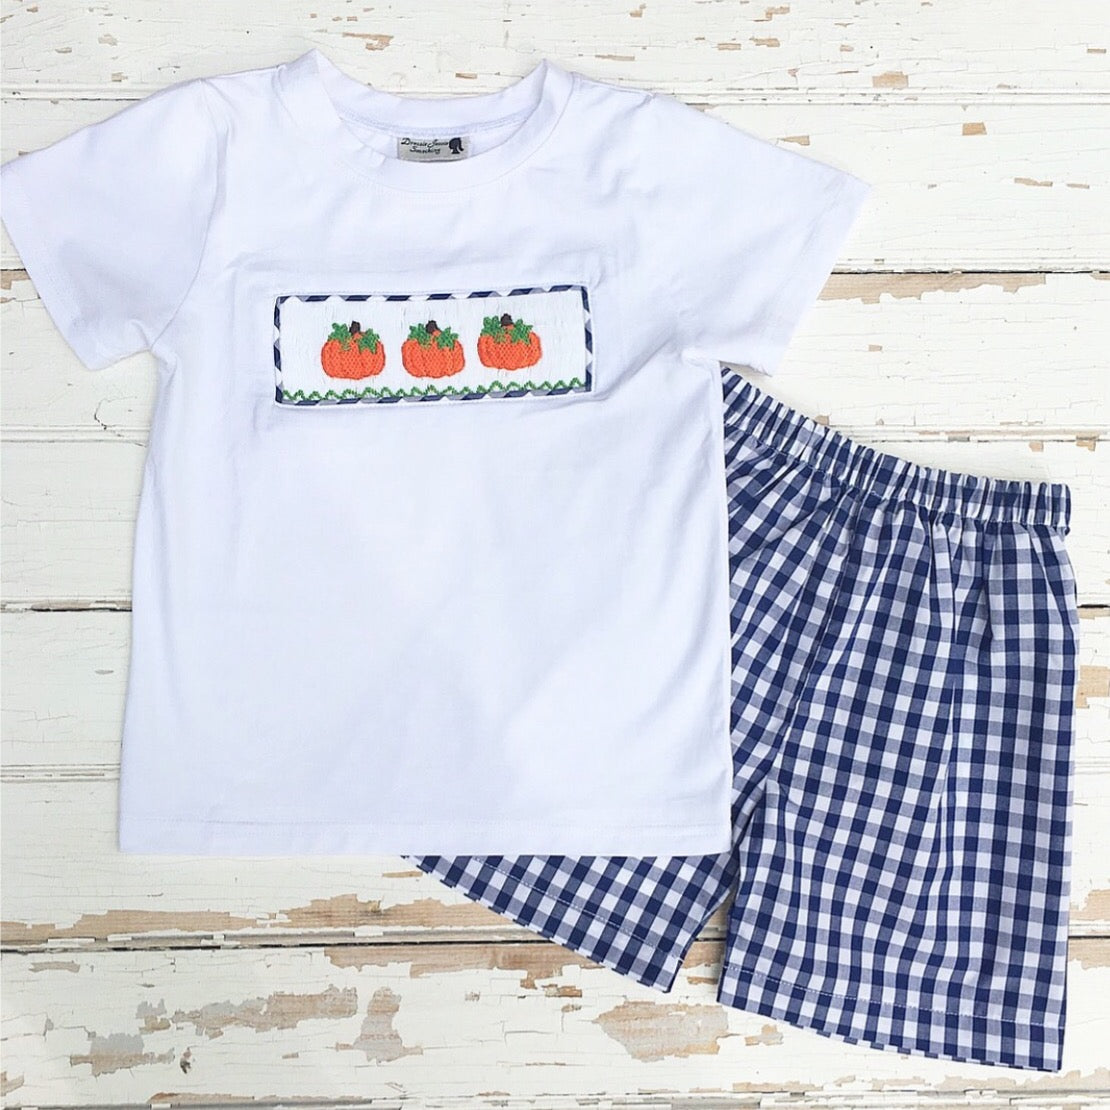 Boys Short Set with White Knit Shirt with Pumpkin Smocking and Navy Gingham Shorts